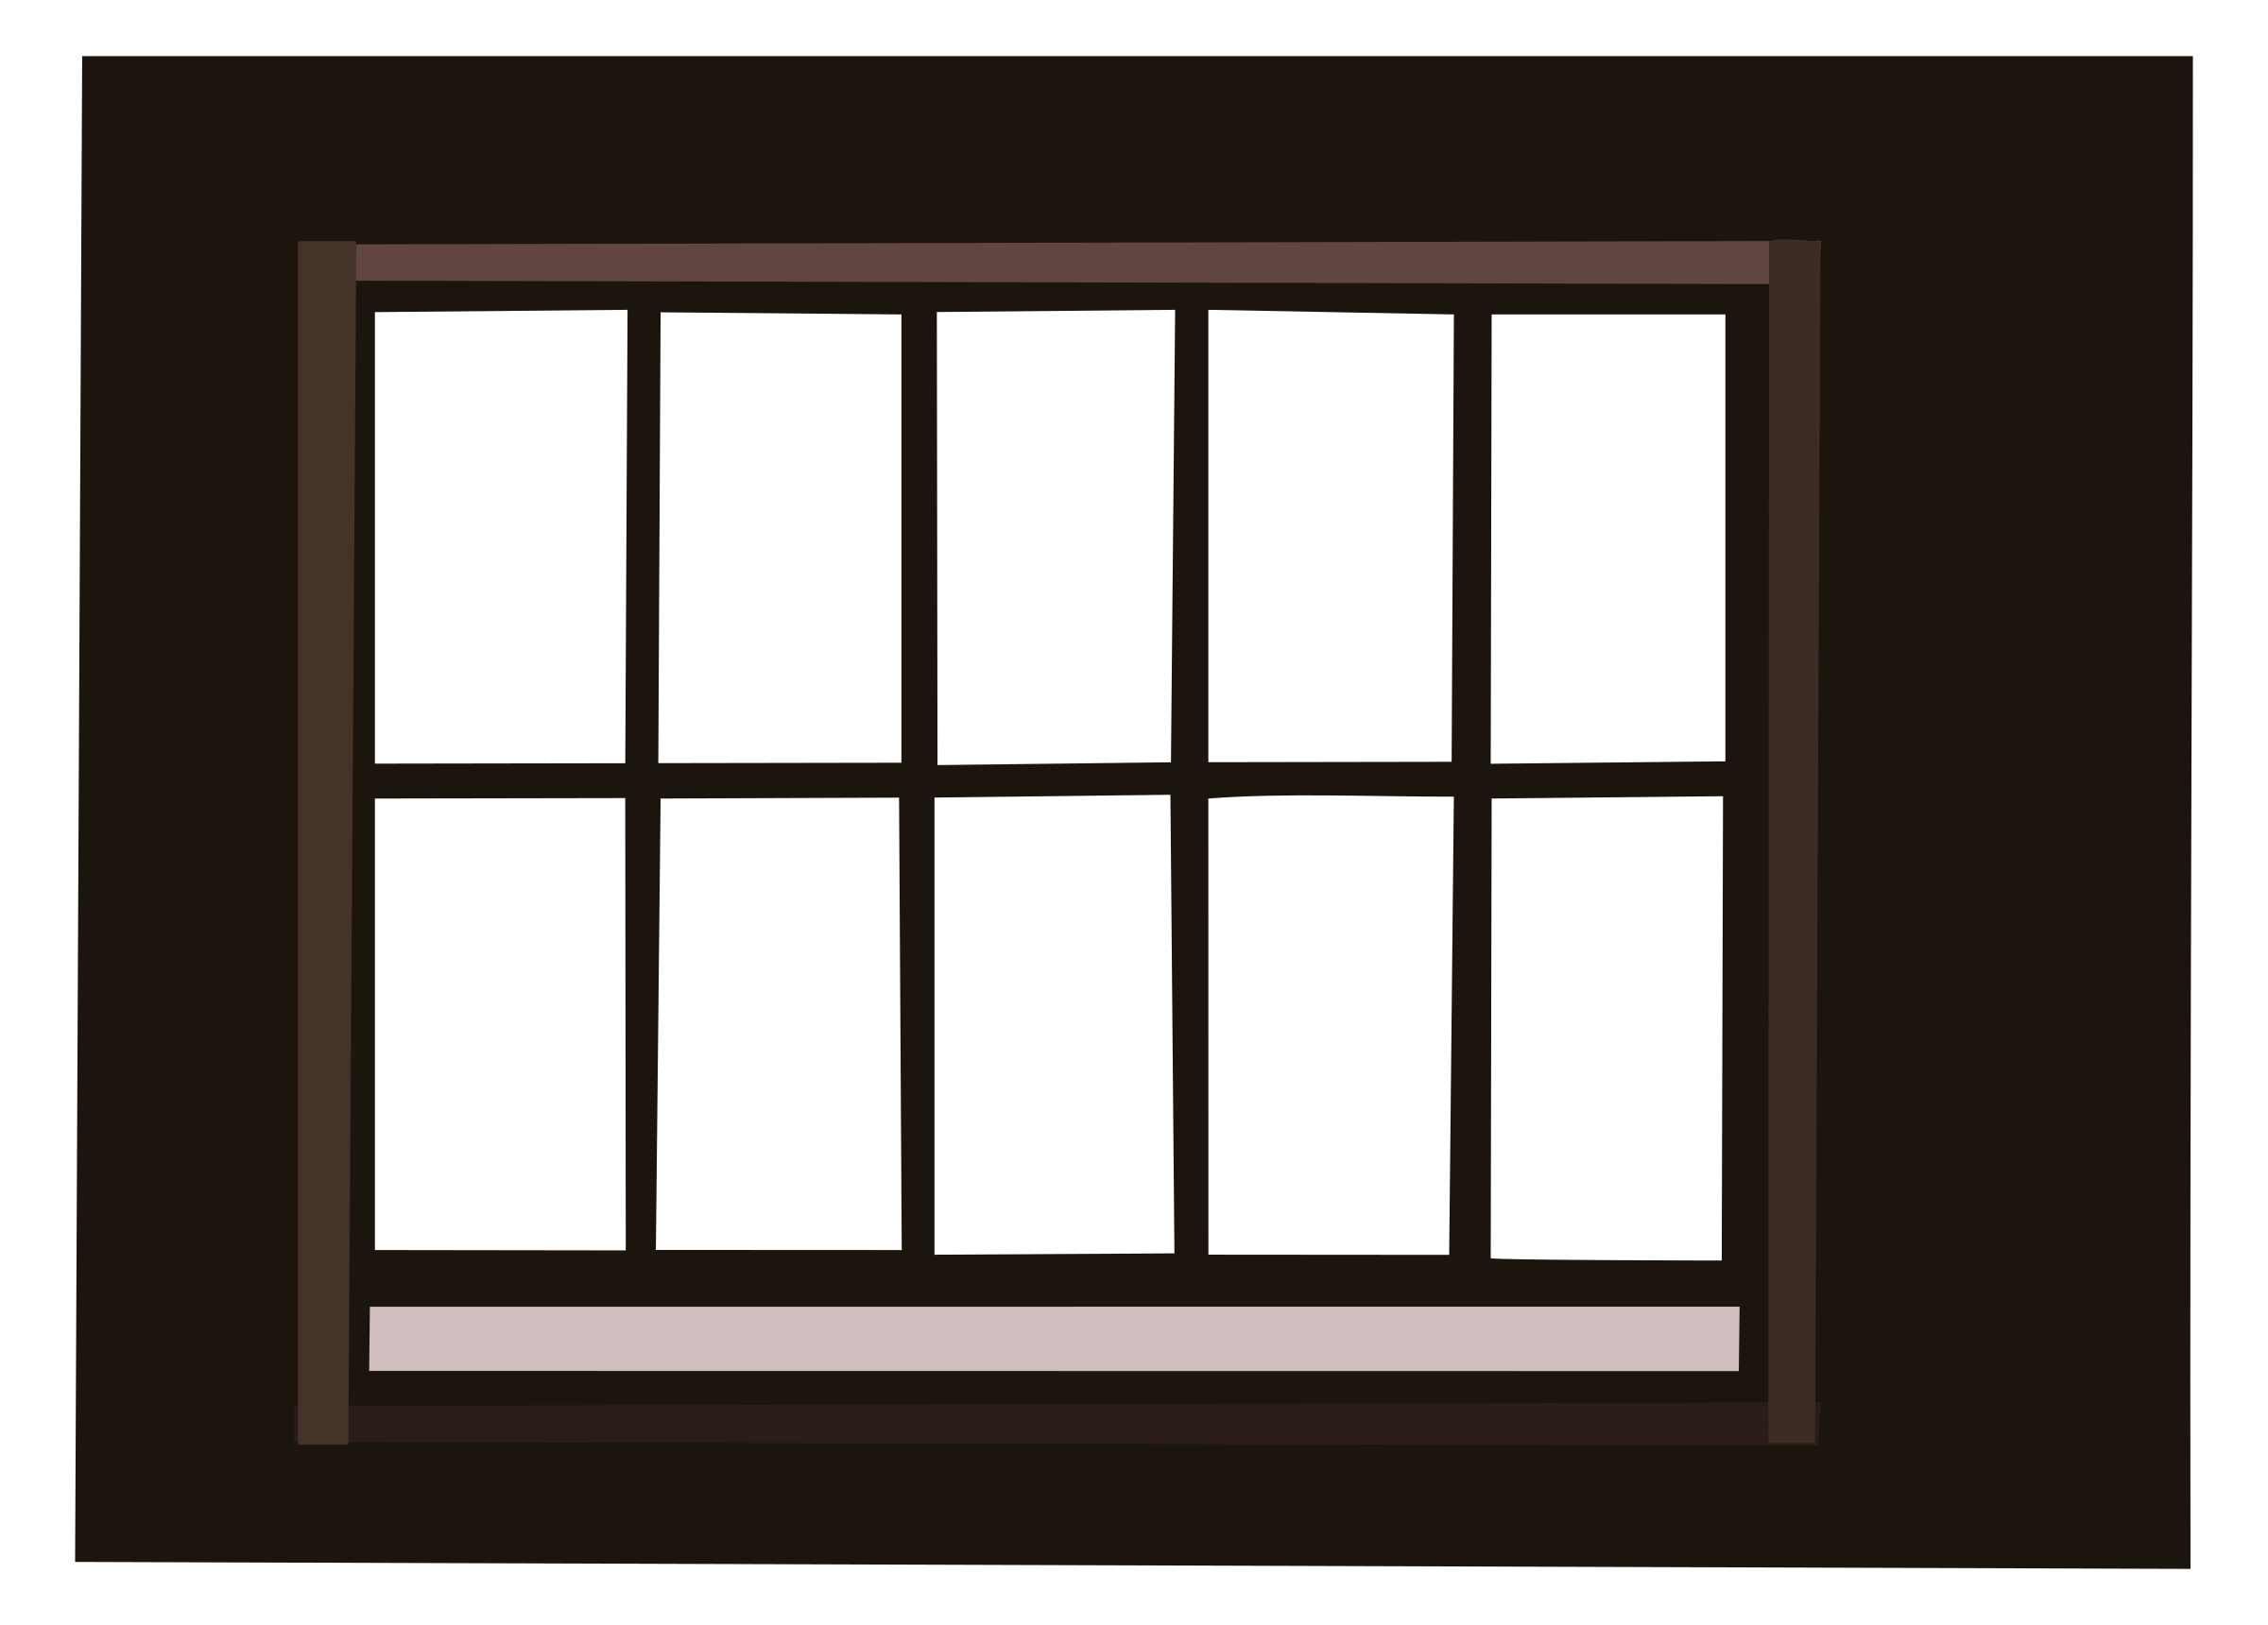 Window clipart big window. With lattice frame image